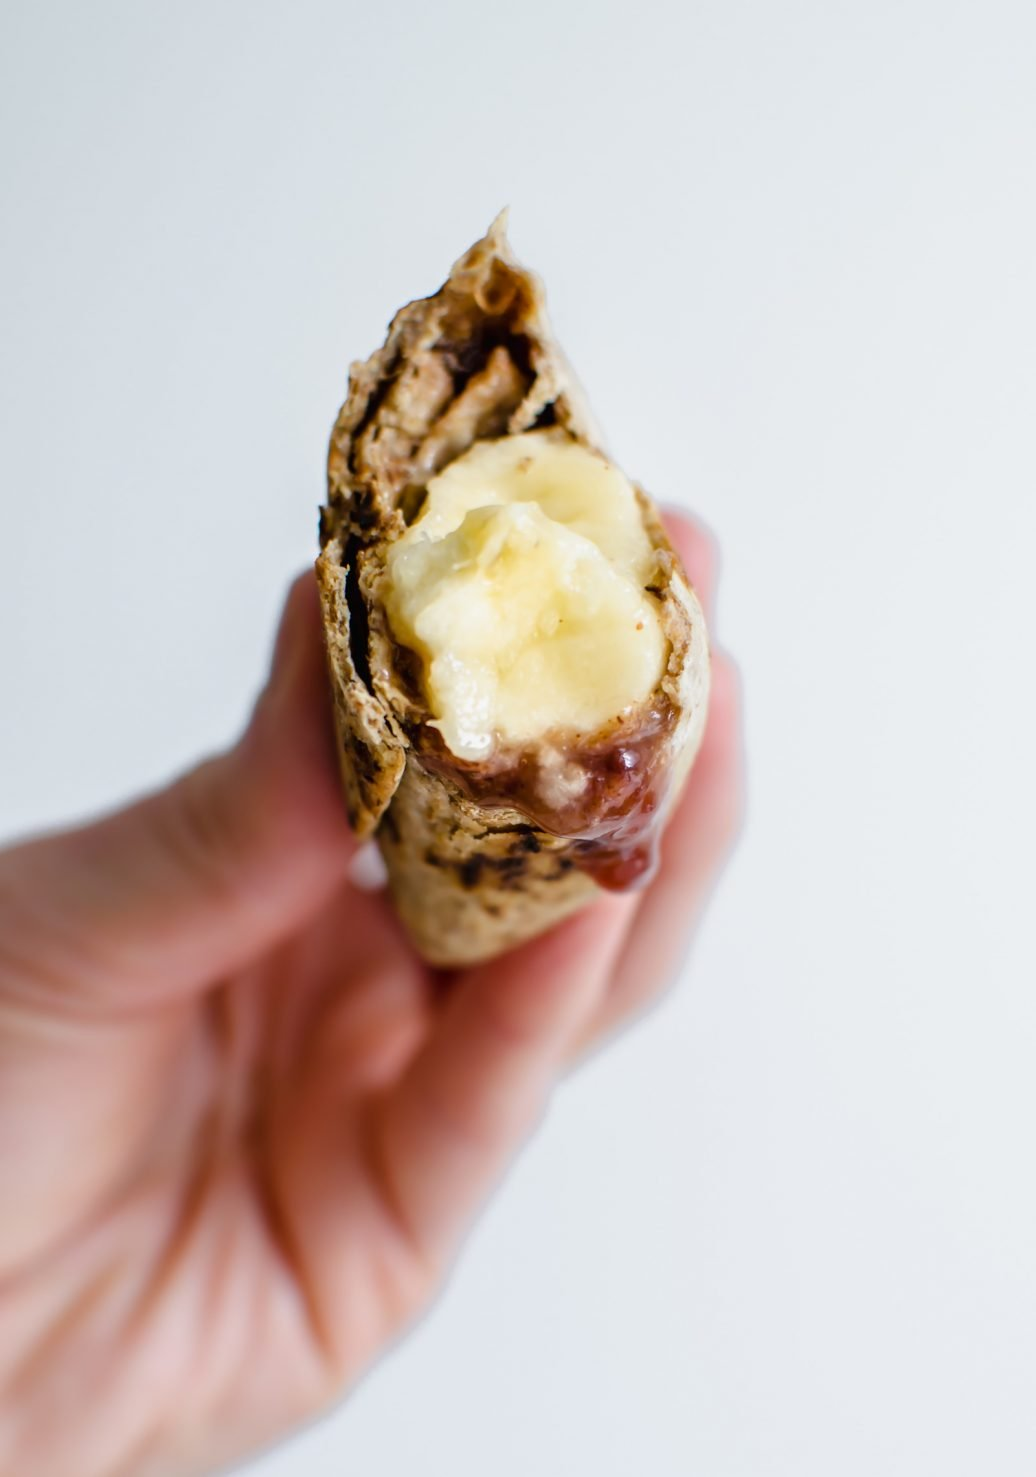 Straight on view of a hand holding half of a whole grain almond butter wrap with a banana inside against a white background.